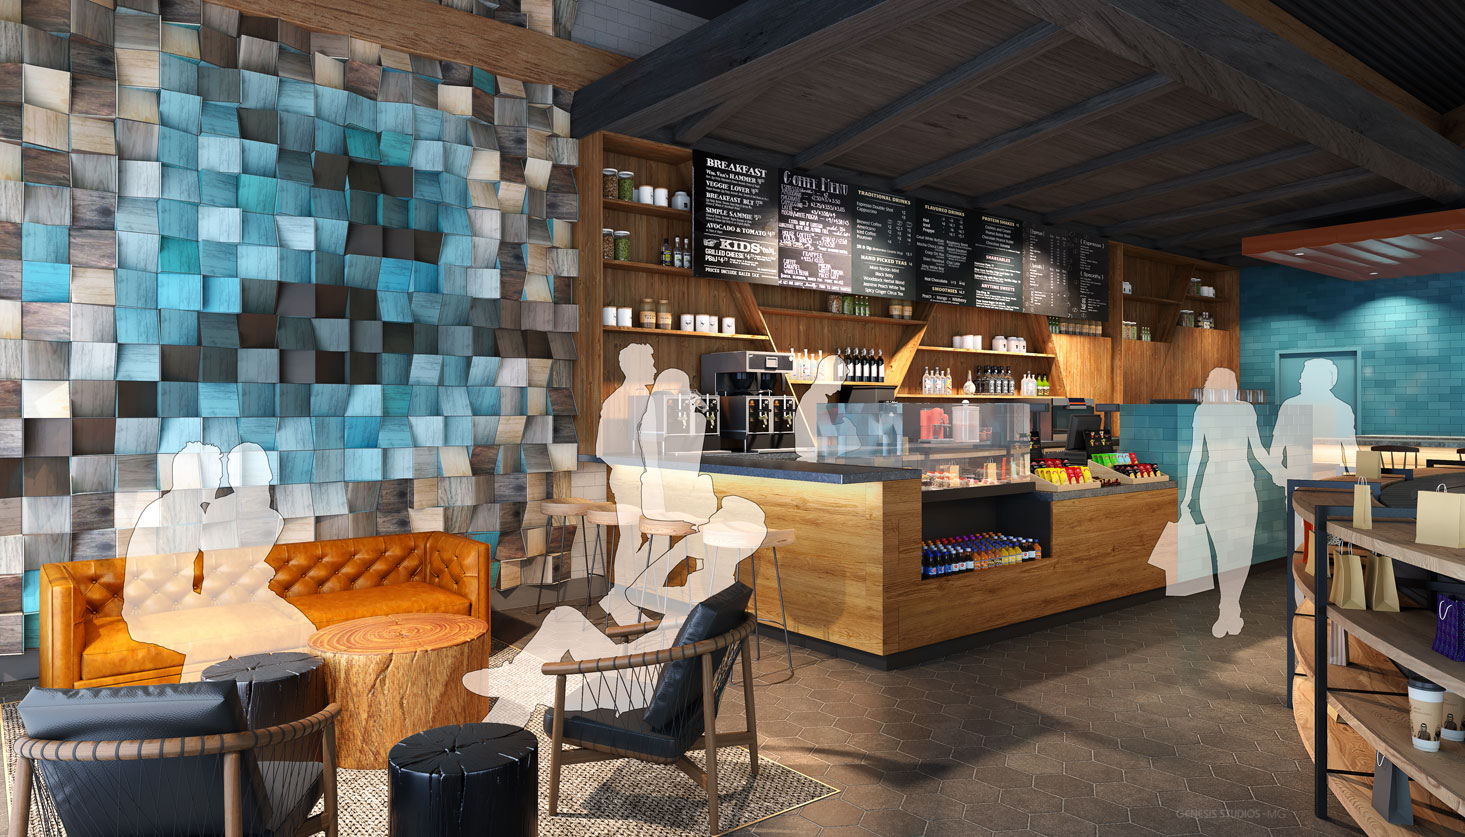 717210 Digital Photorealistic Architectural Renderings of Caribou Coffee Interior Coffee Bar for Shea Design